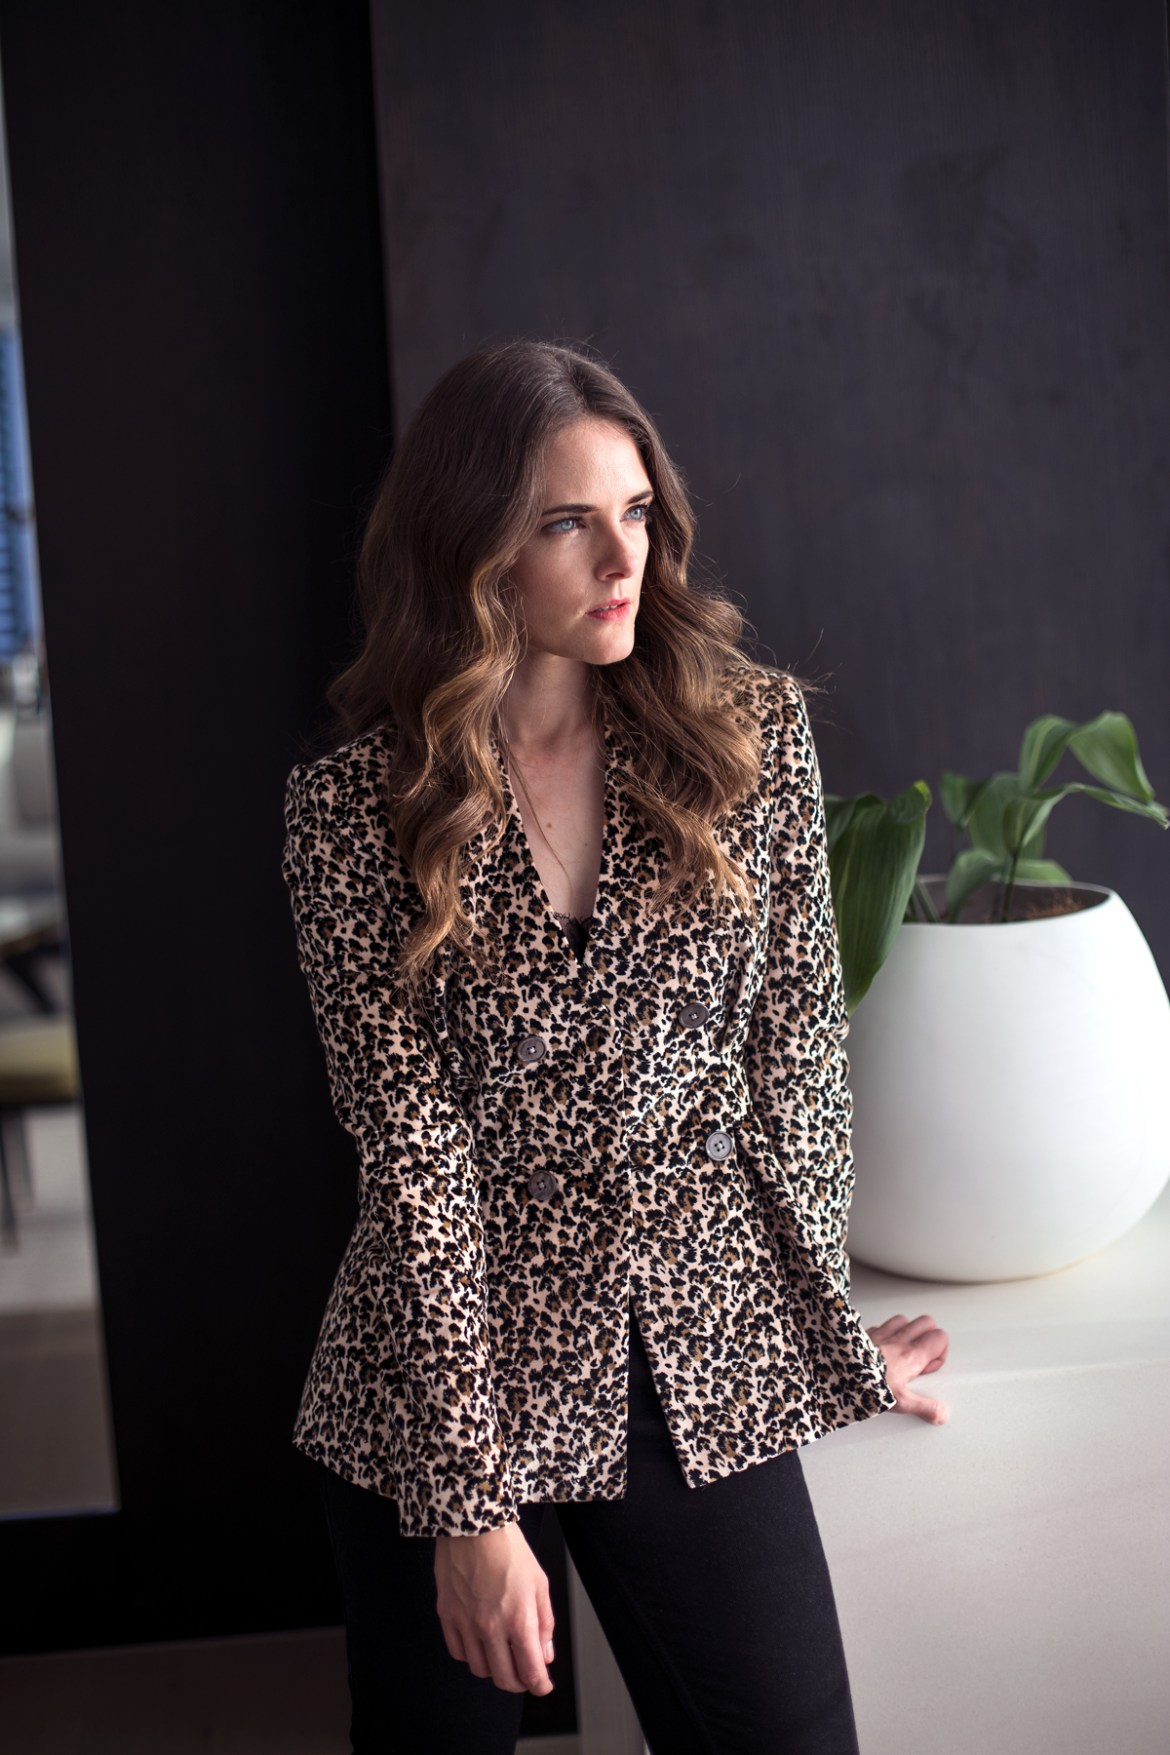 Rebecca Taylor leopard blazer and Reiko Denim outfit worn by Inspiring Wit fashion blogger Jenelle at the Westin Perth